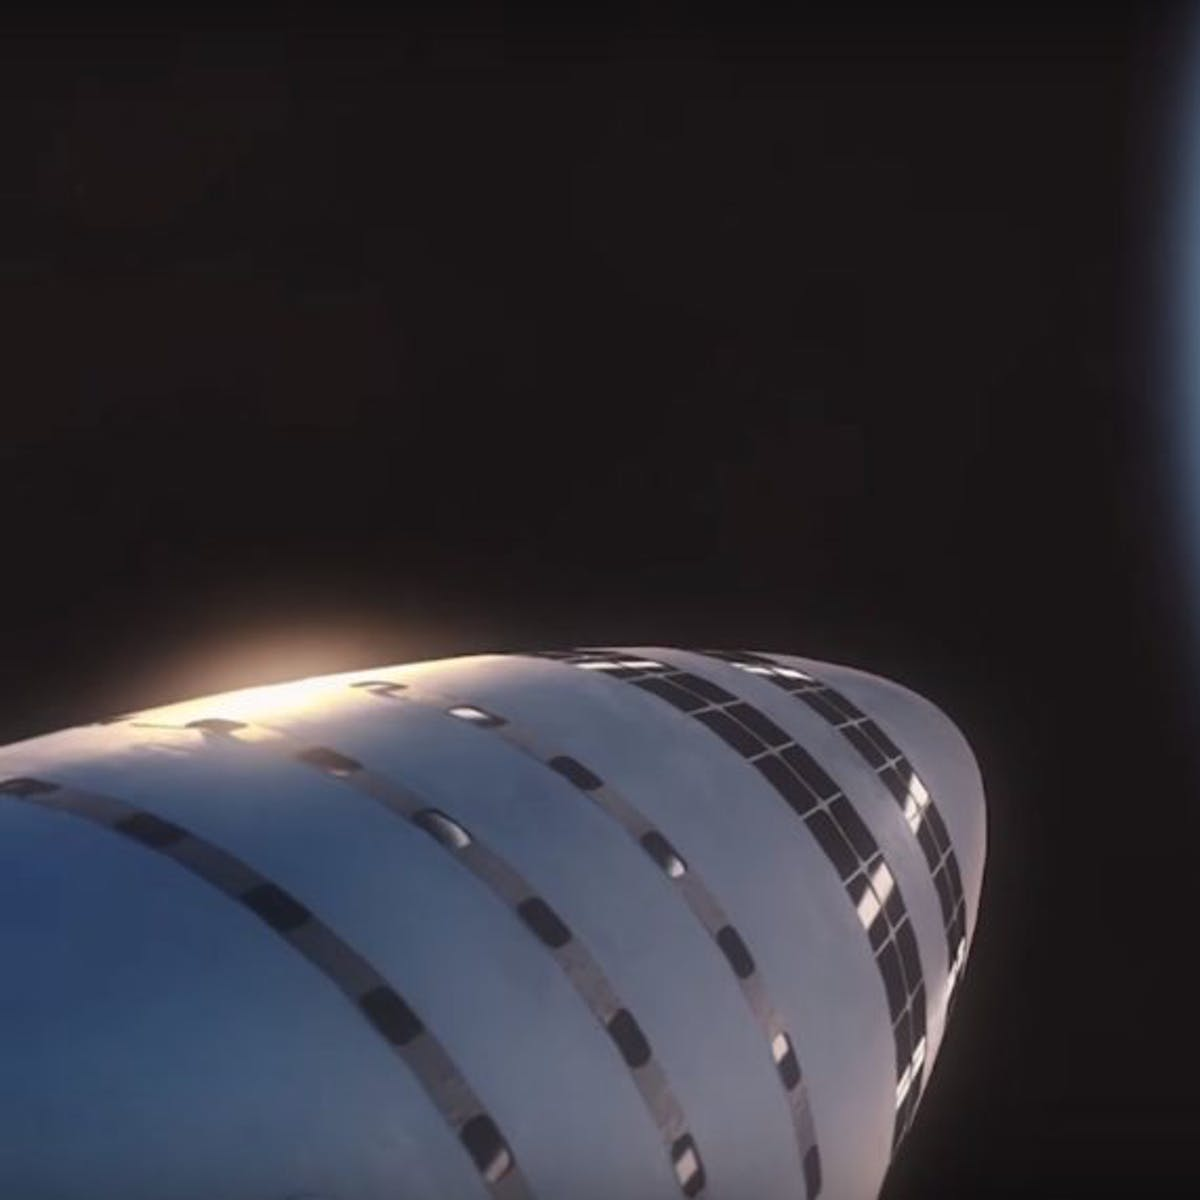 Spacex Everything To Know About Its Groundbreaking Bfr And Mr